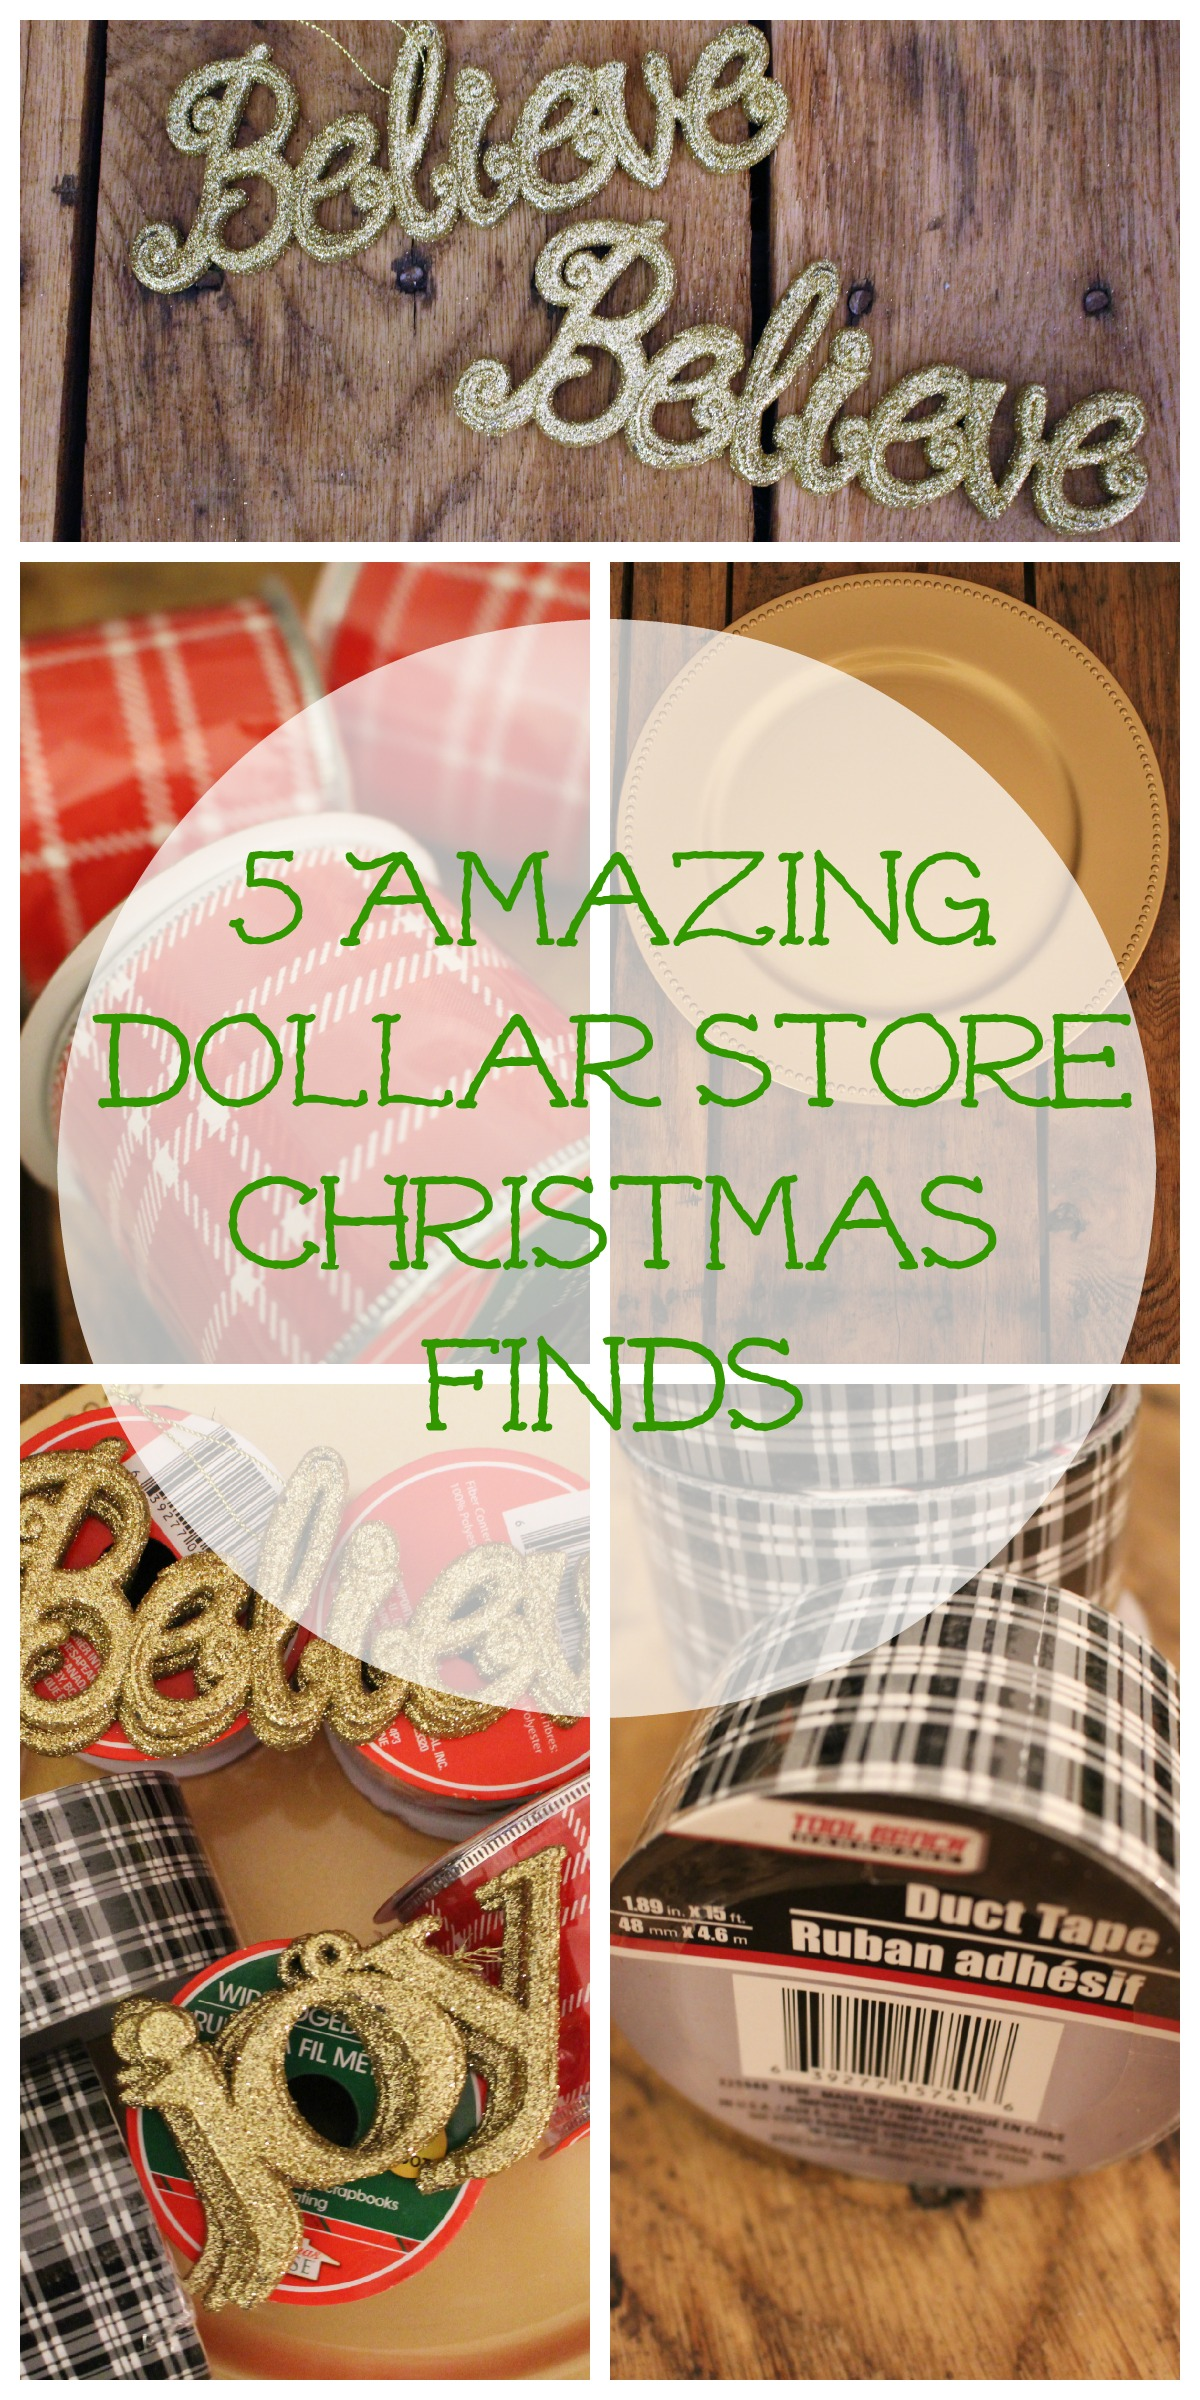 5 amazing dollar tree Collage